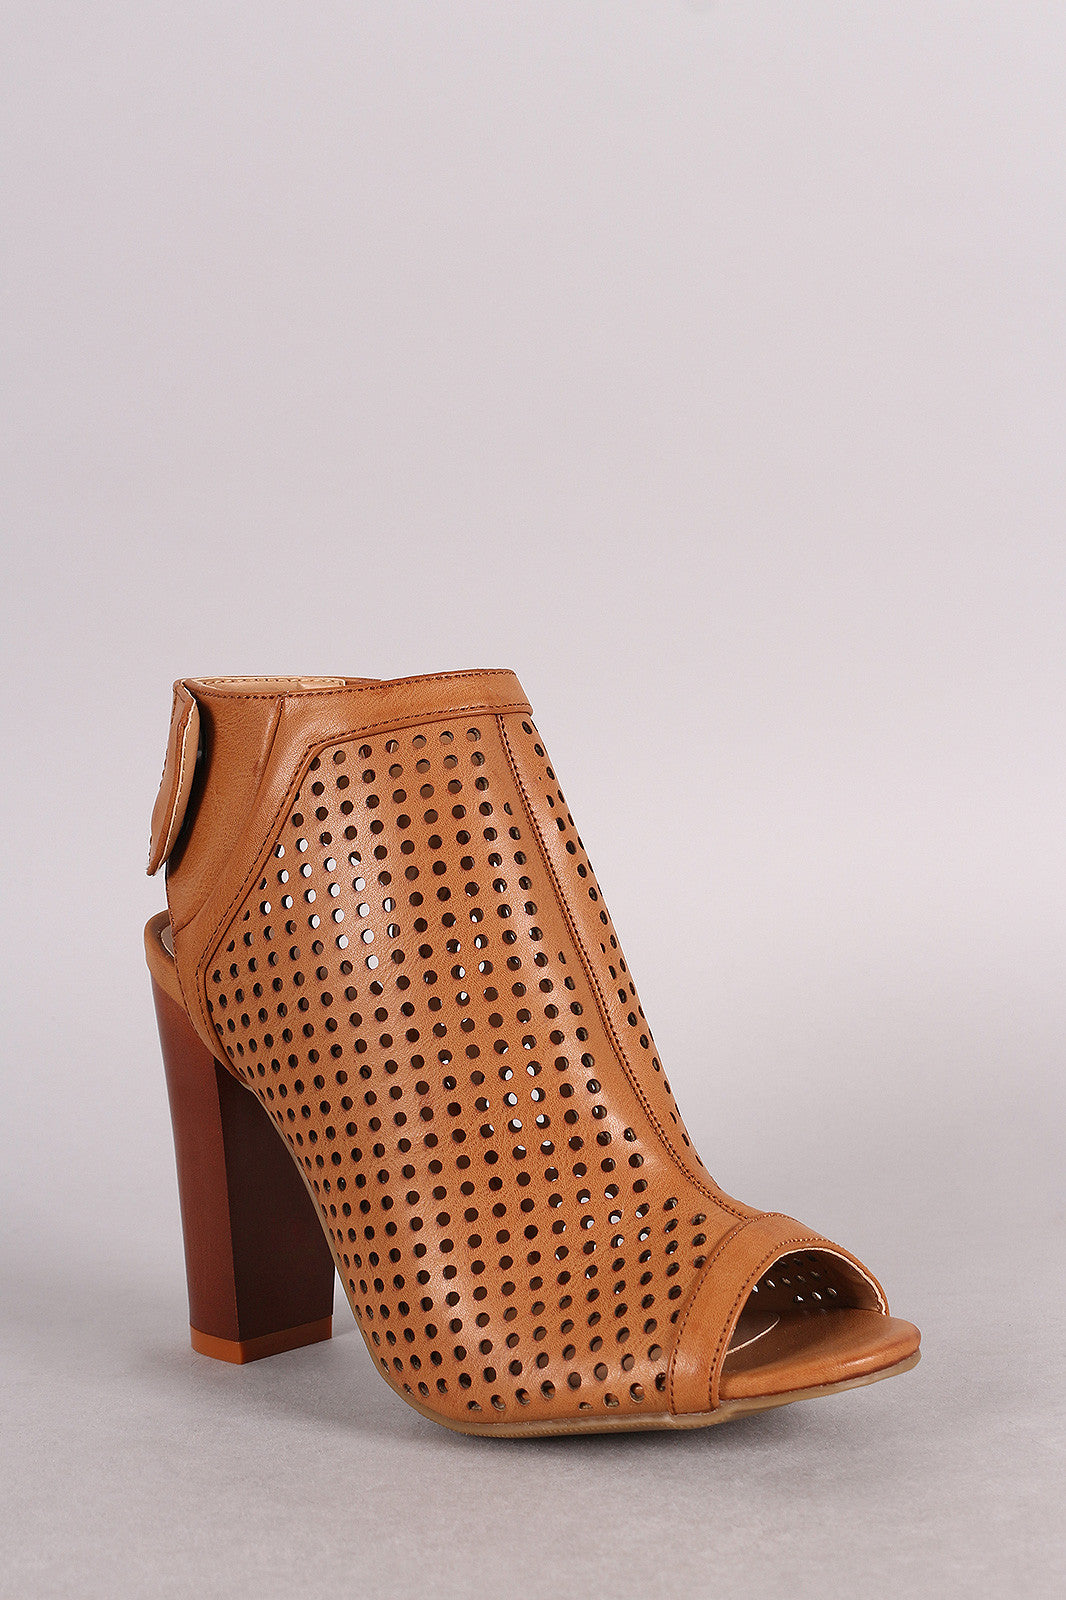 Bamboo Perforated Peep Toe Chunky Mule Heel - Thick 'N' Curvy Shop - 2